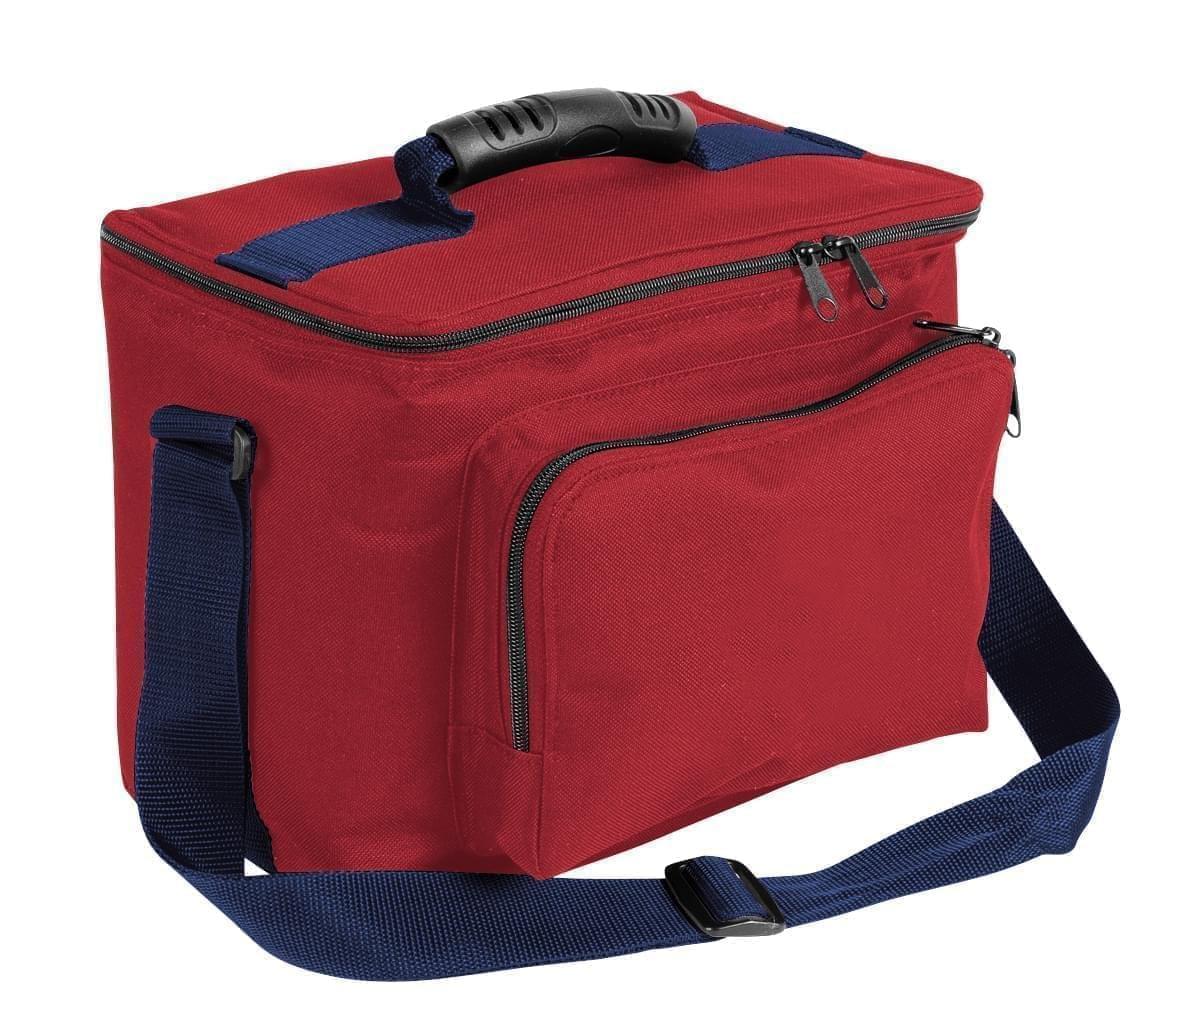 USA Made Nylon Poly Lunch Coolers, Red-Navy, 11001161-AZZ